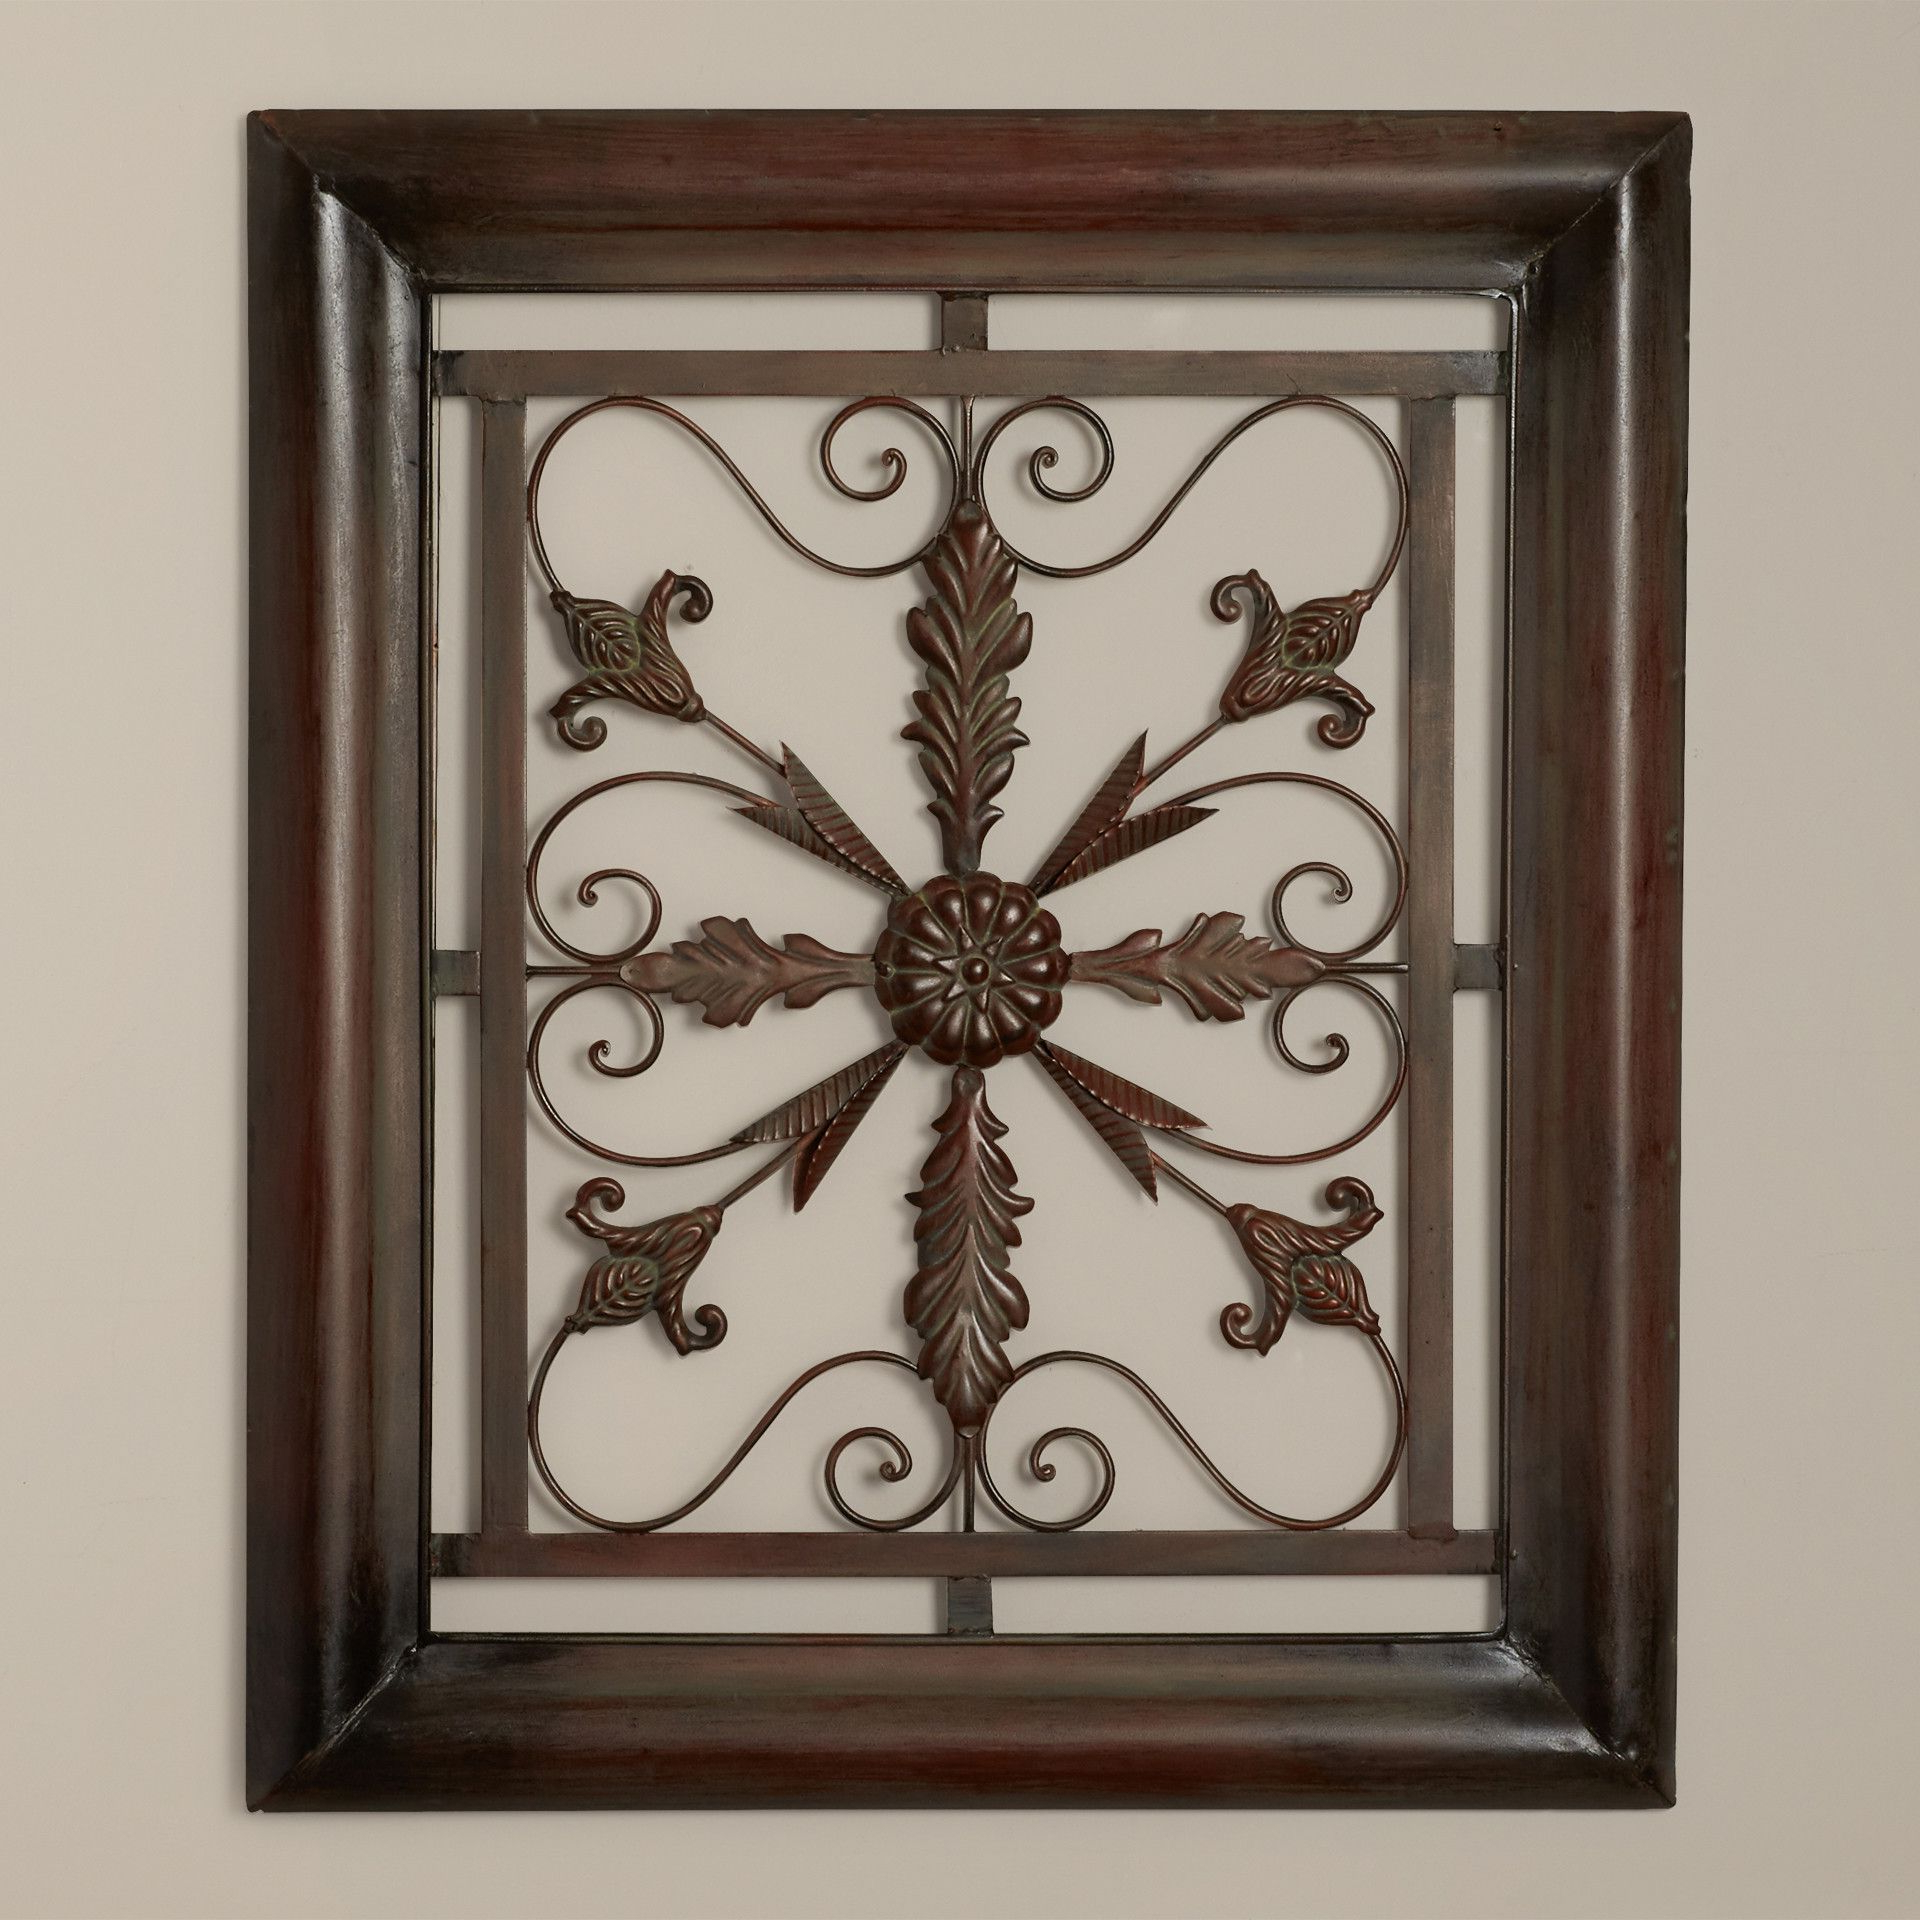 Charlton Home® Bayliss Square Scroll Wall Decor (View 5 of 20)